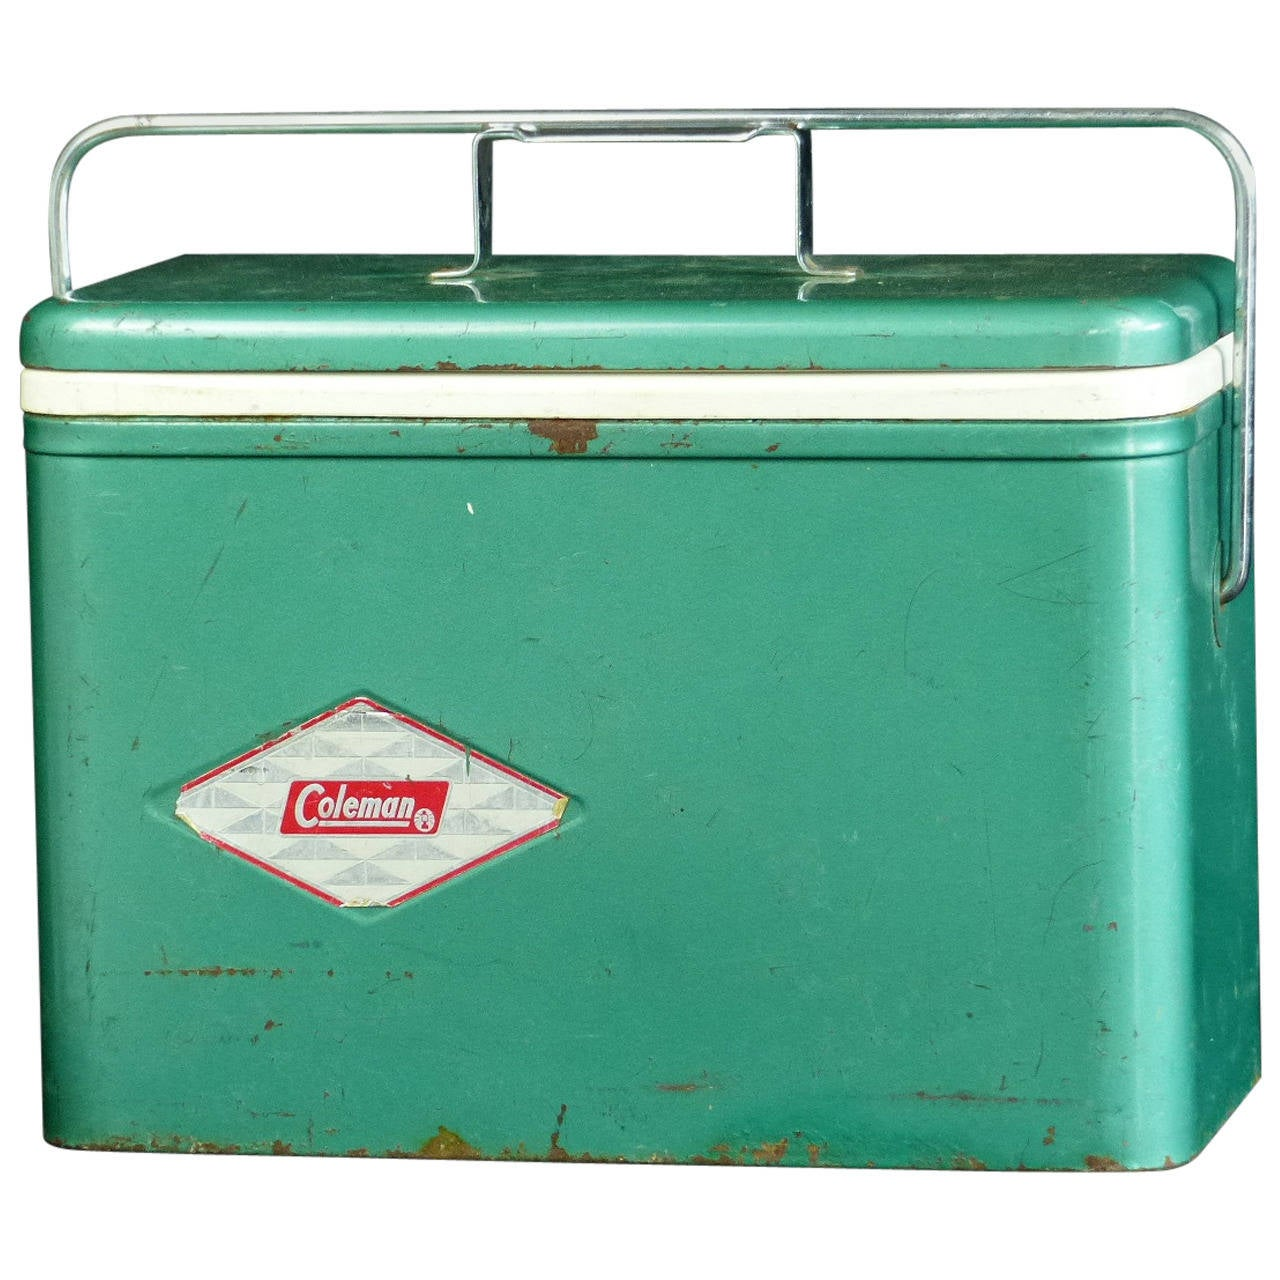 dating vintage coleman coolers The coleman 2-burner classic liquid fuel stove gives you 14,000 there are coolers that keep food i own and use coleman lanterns and stoves dating back.